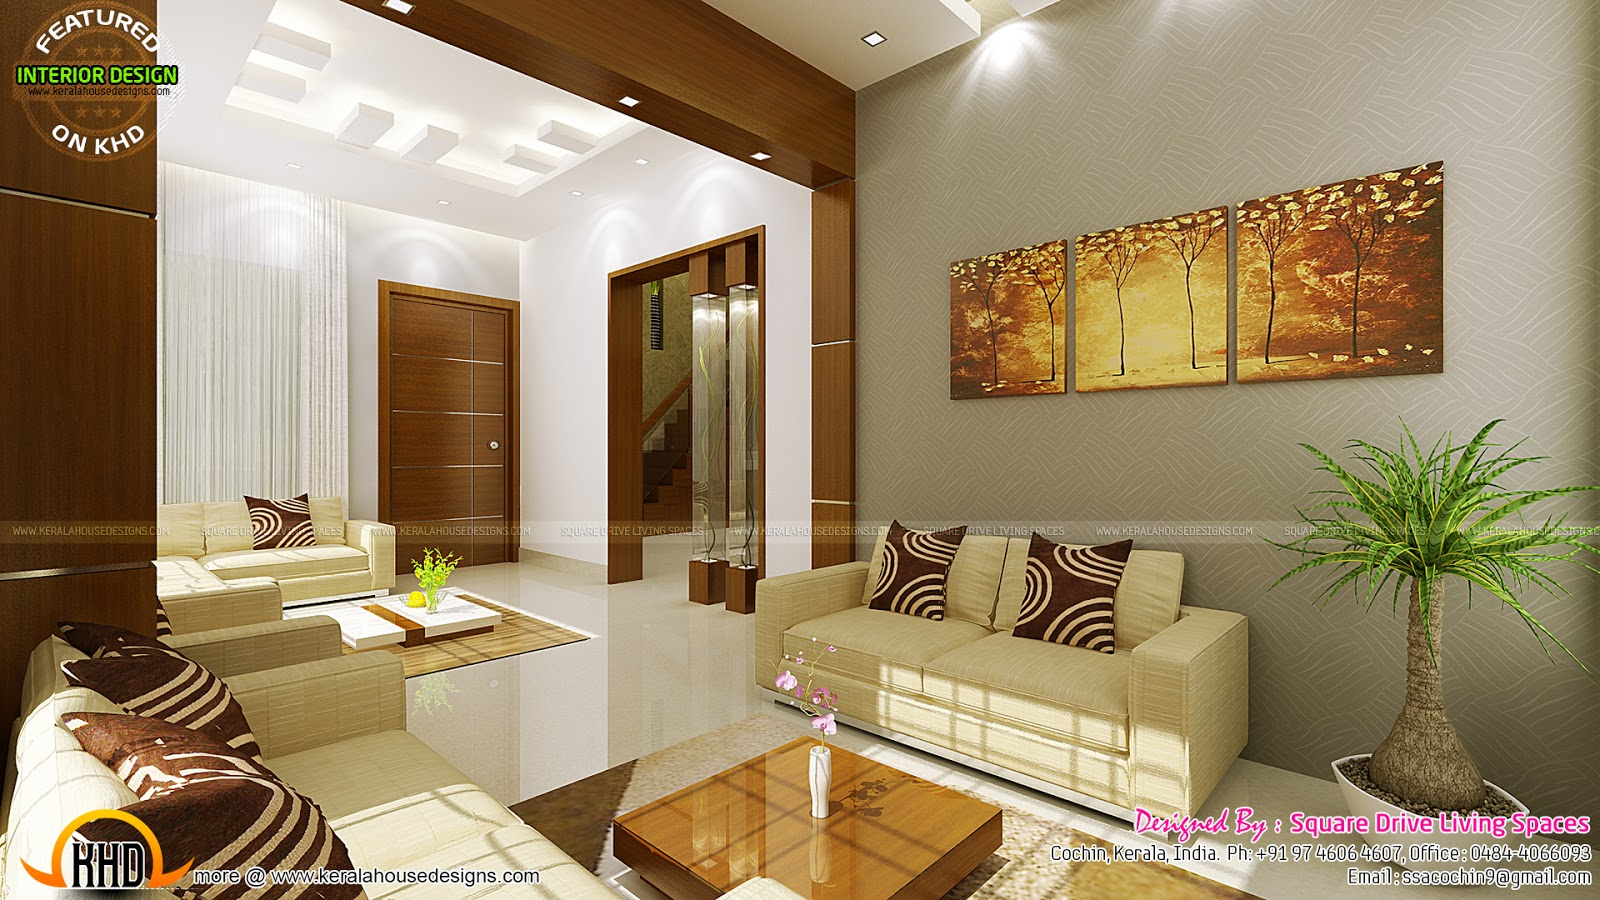 Contemporary kitchen dining and living room kerala home for Room interior